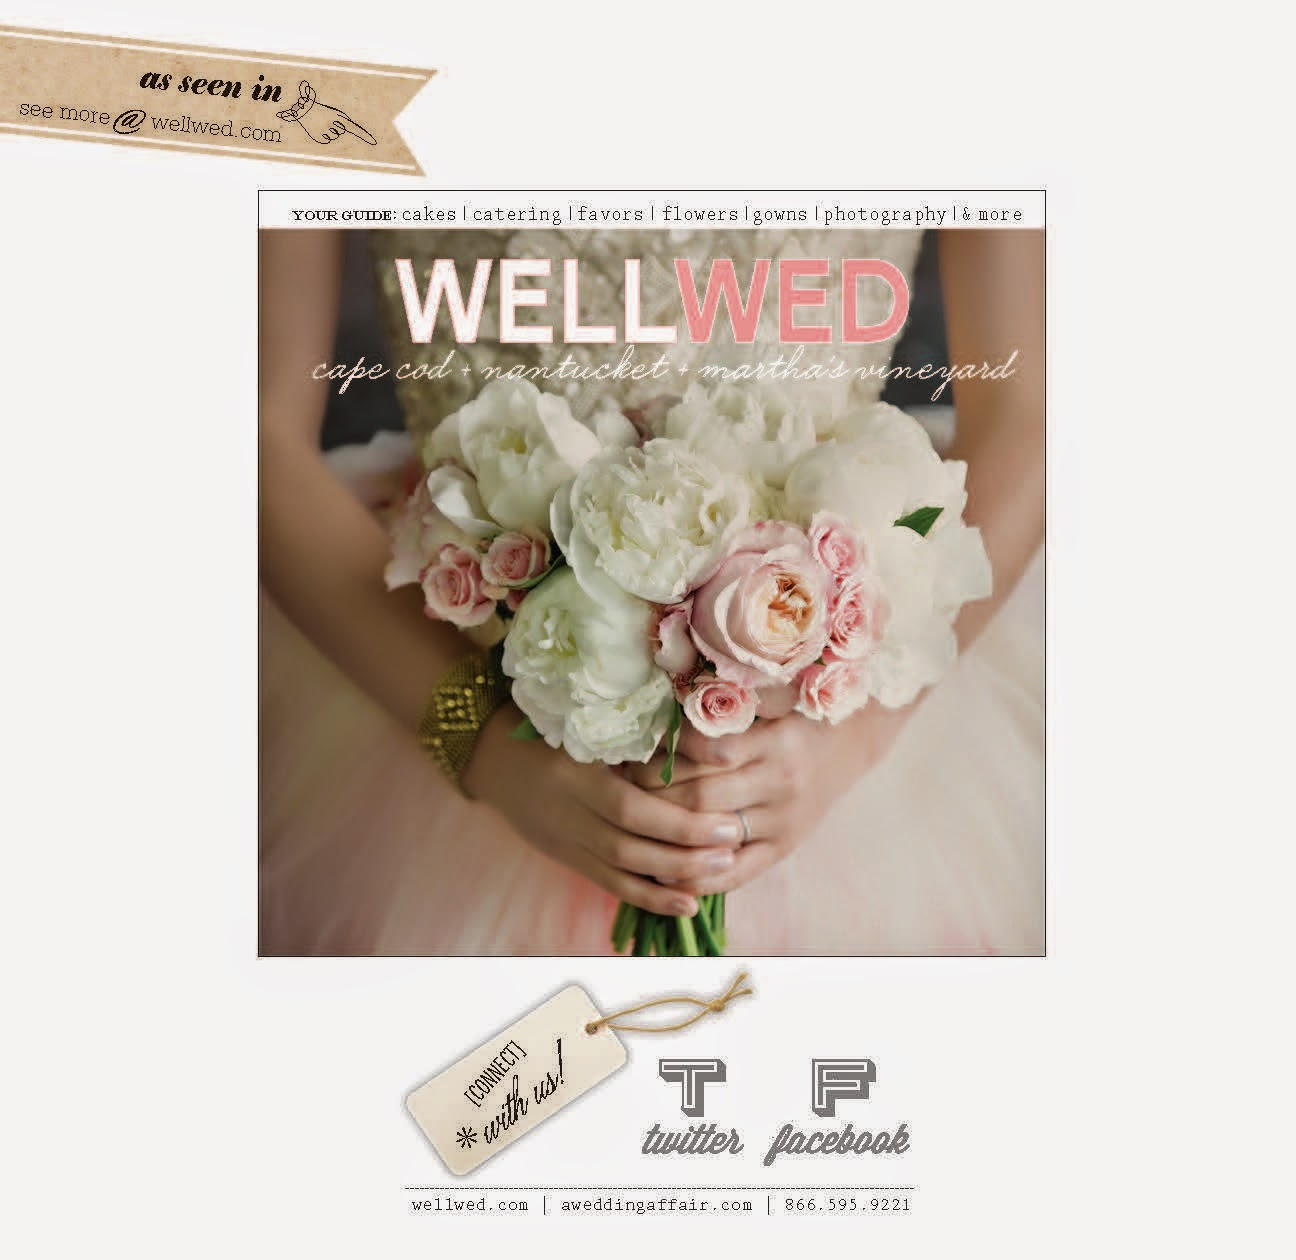 WellWed New York - WellWed CapeCod, Nantucket, Martha's Vineyard - Tartan & Tulle - Splendid Stems Floral Designs